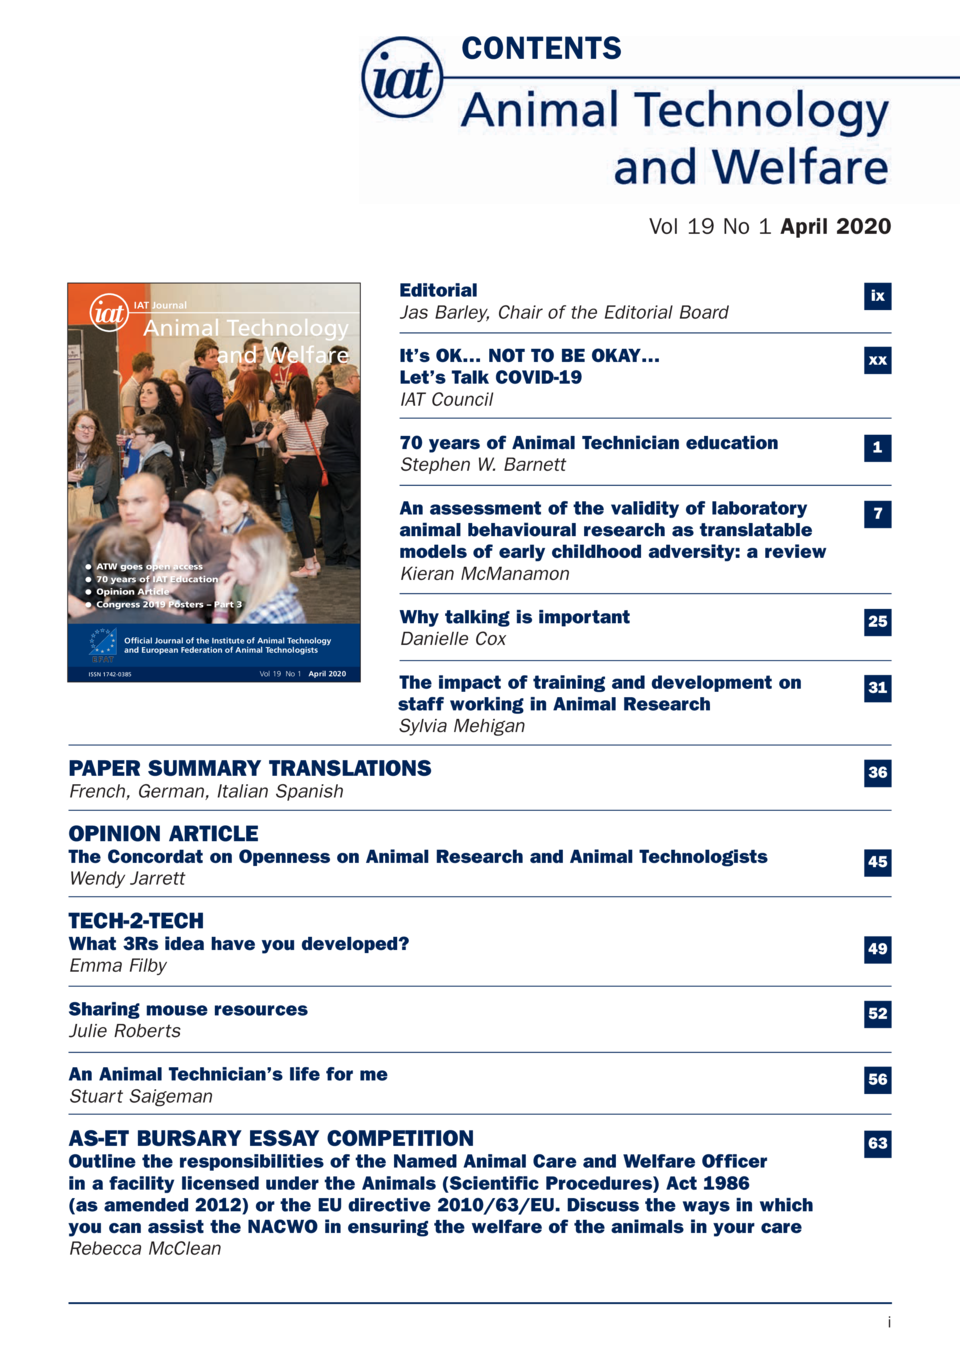 CONTENTS  Vol 19 No 1 April 2020  IAT Journal  Animal Technology and Welfare  G ATW goes open access  G 70 years of IAT Ed...